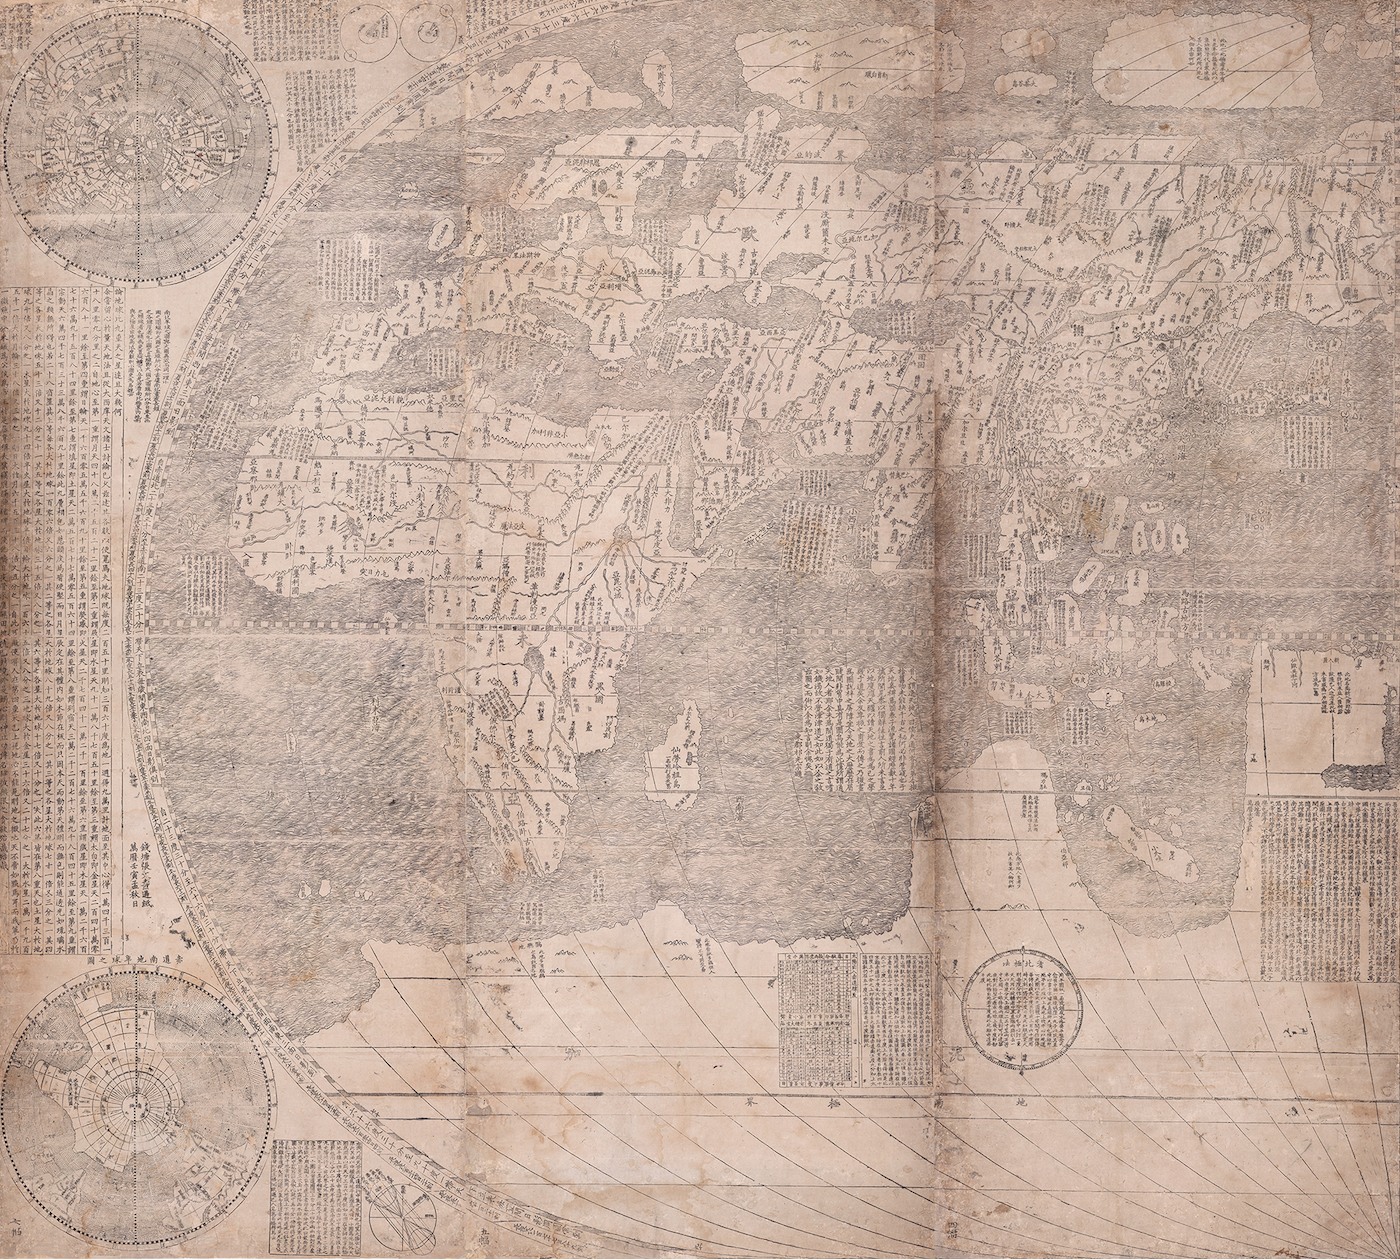 """Matteo Ricci, detail of """"A Complete Map of the Ten Thousand Countries of the World"""" (1602), engraved by Li Zhizao, printed by Zhang Wentao; China, Beijing; ink on paper; owned by the James Ford Bell Trust, held at the James Ford Bell Library, University of Minnesota (click to enlarge)"""